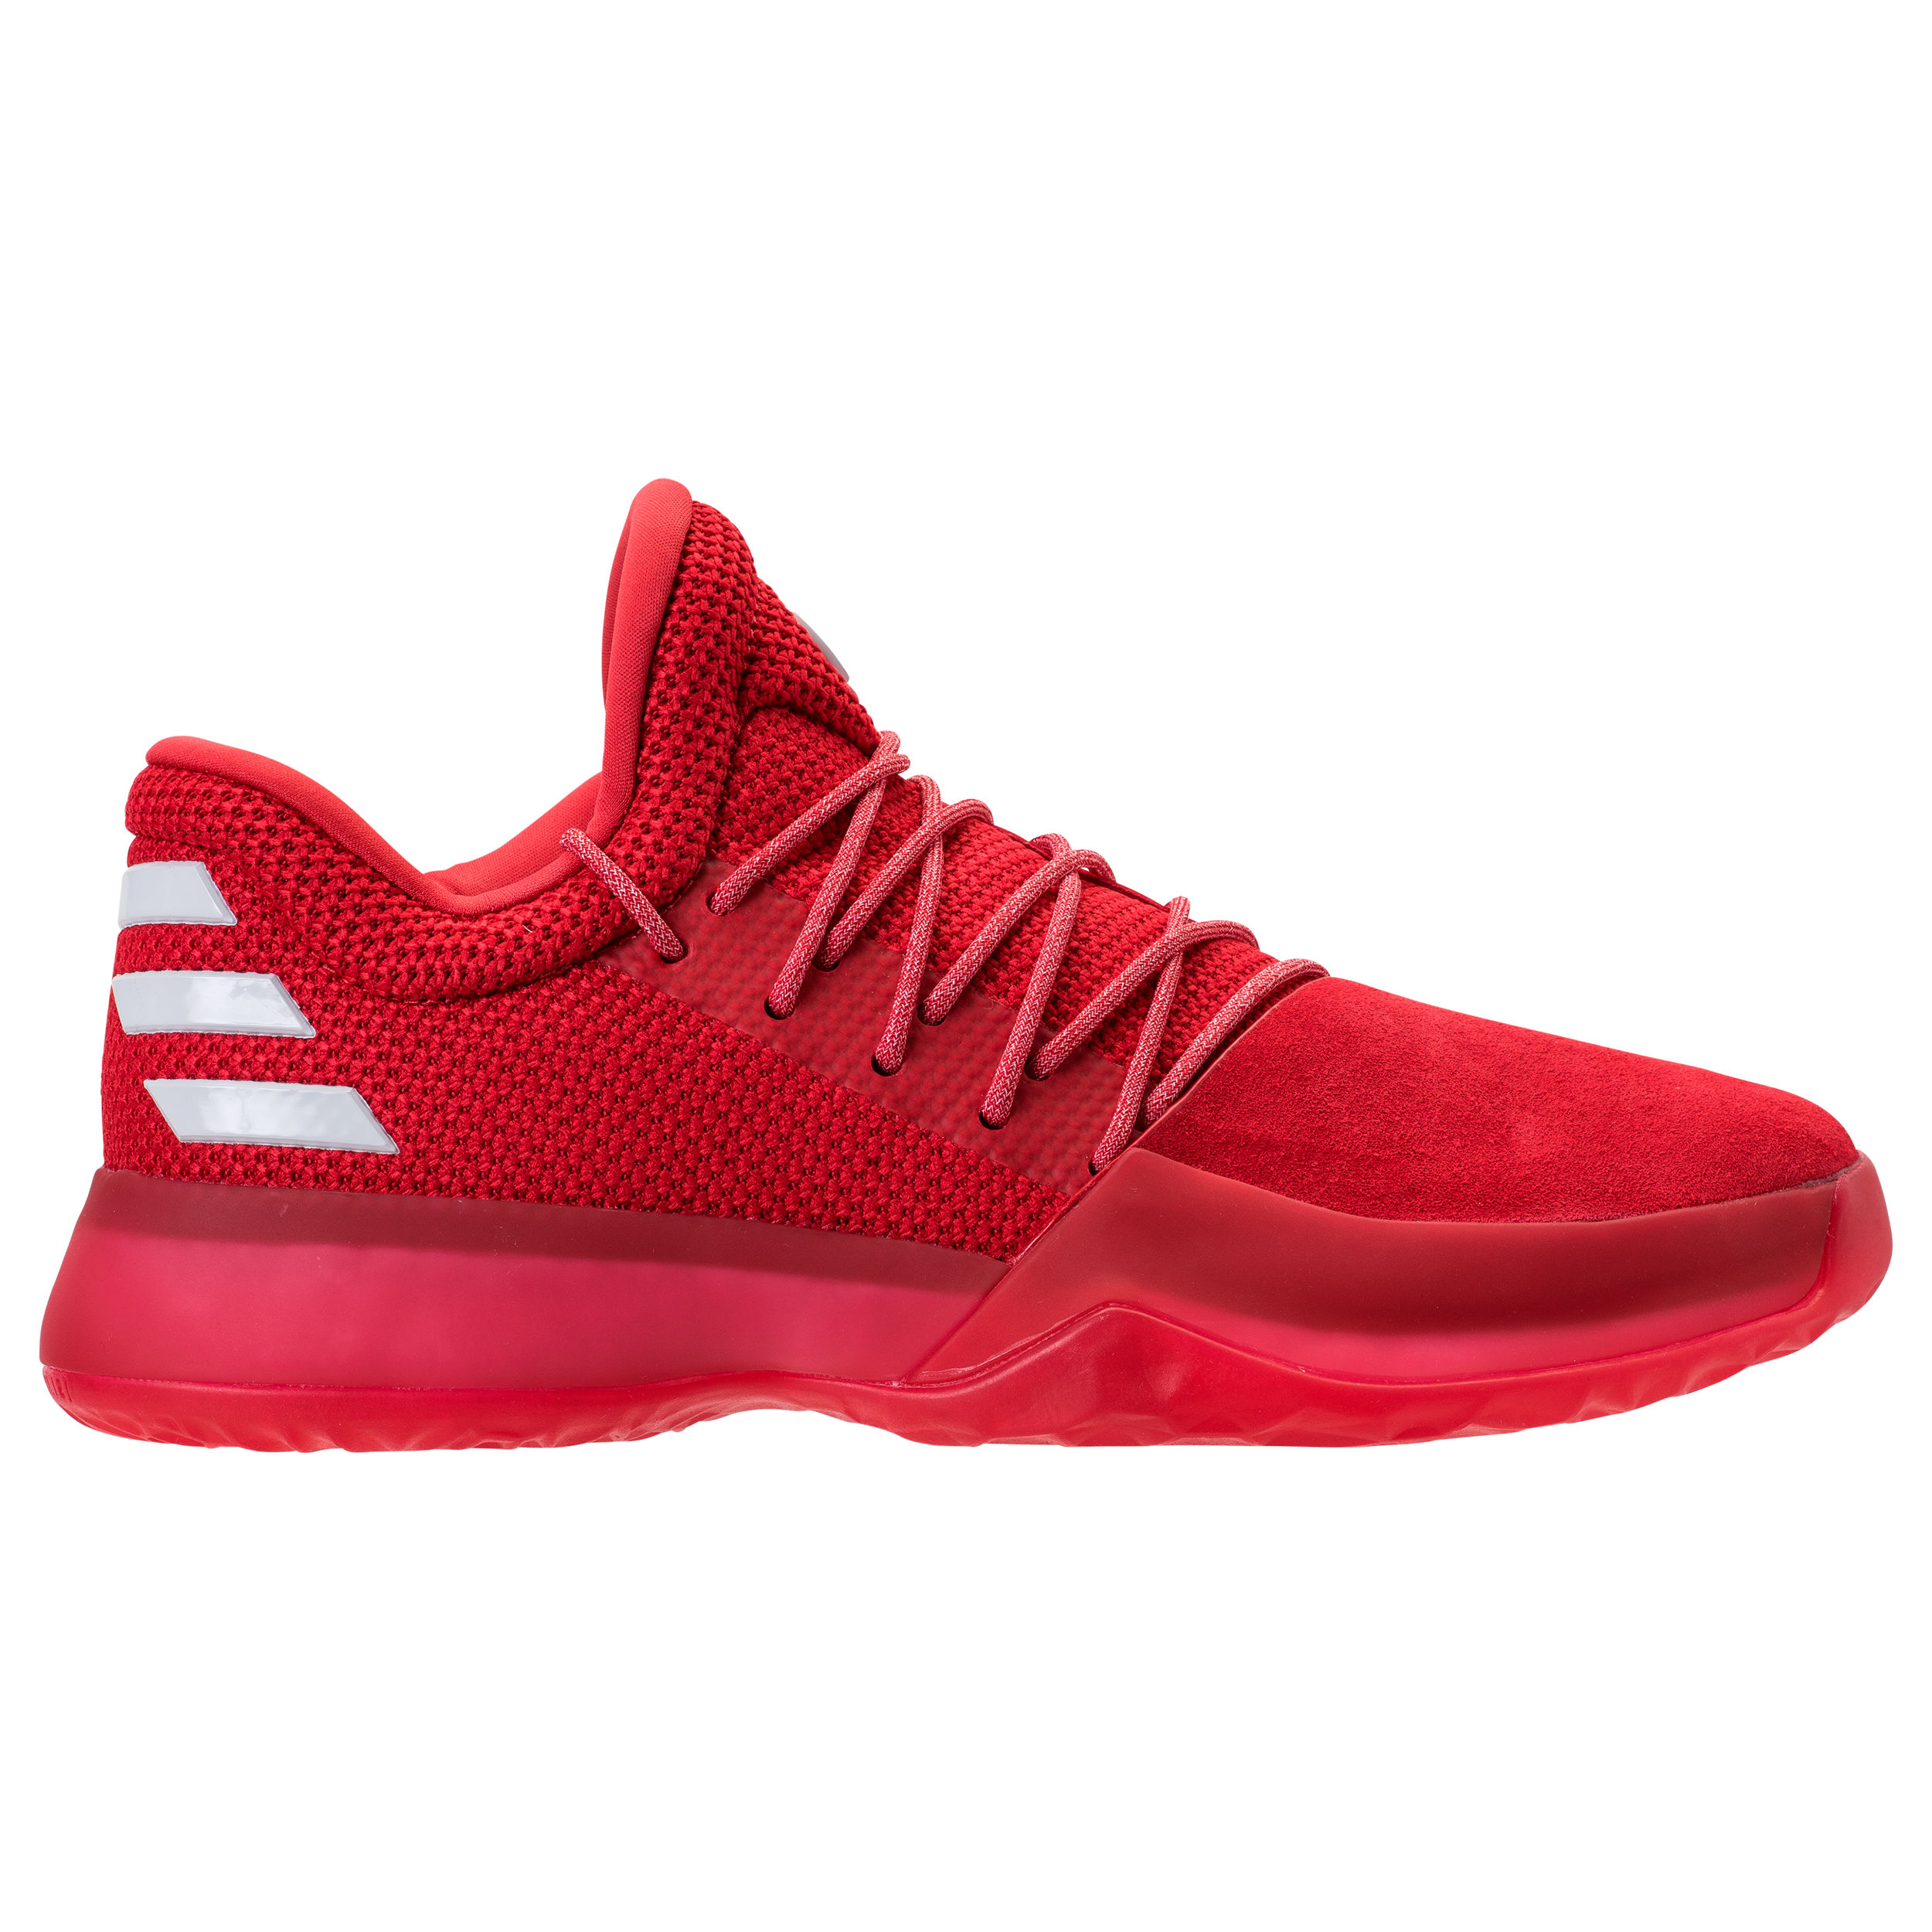 3ba36f2586f0 adidas Harden Vol. 1 Archives - WearTesters